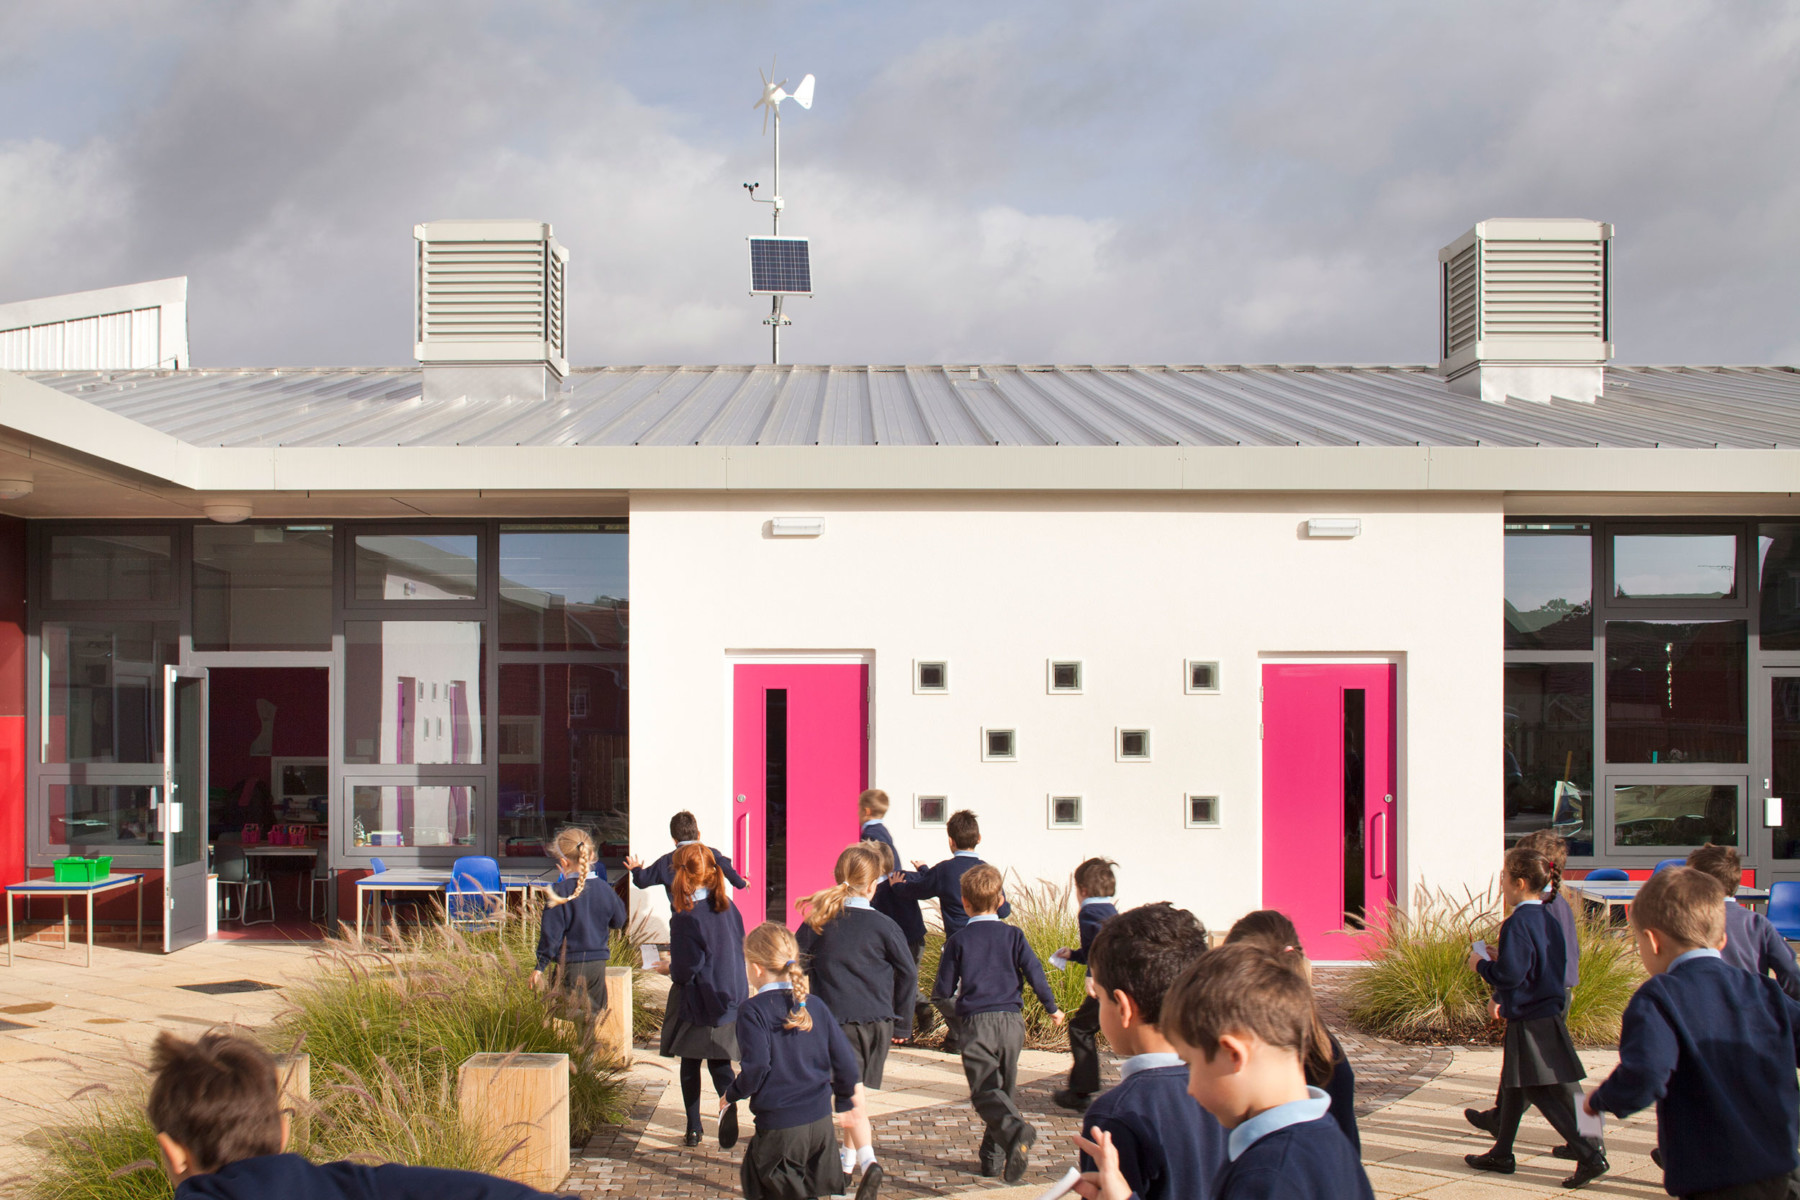 Sarah-Wigglesworth-Architects Takeley-Primary-School Oasis-Garden 1800